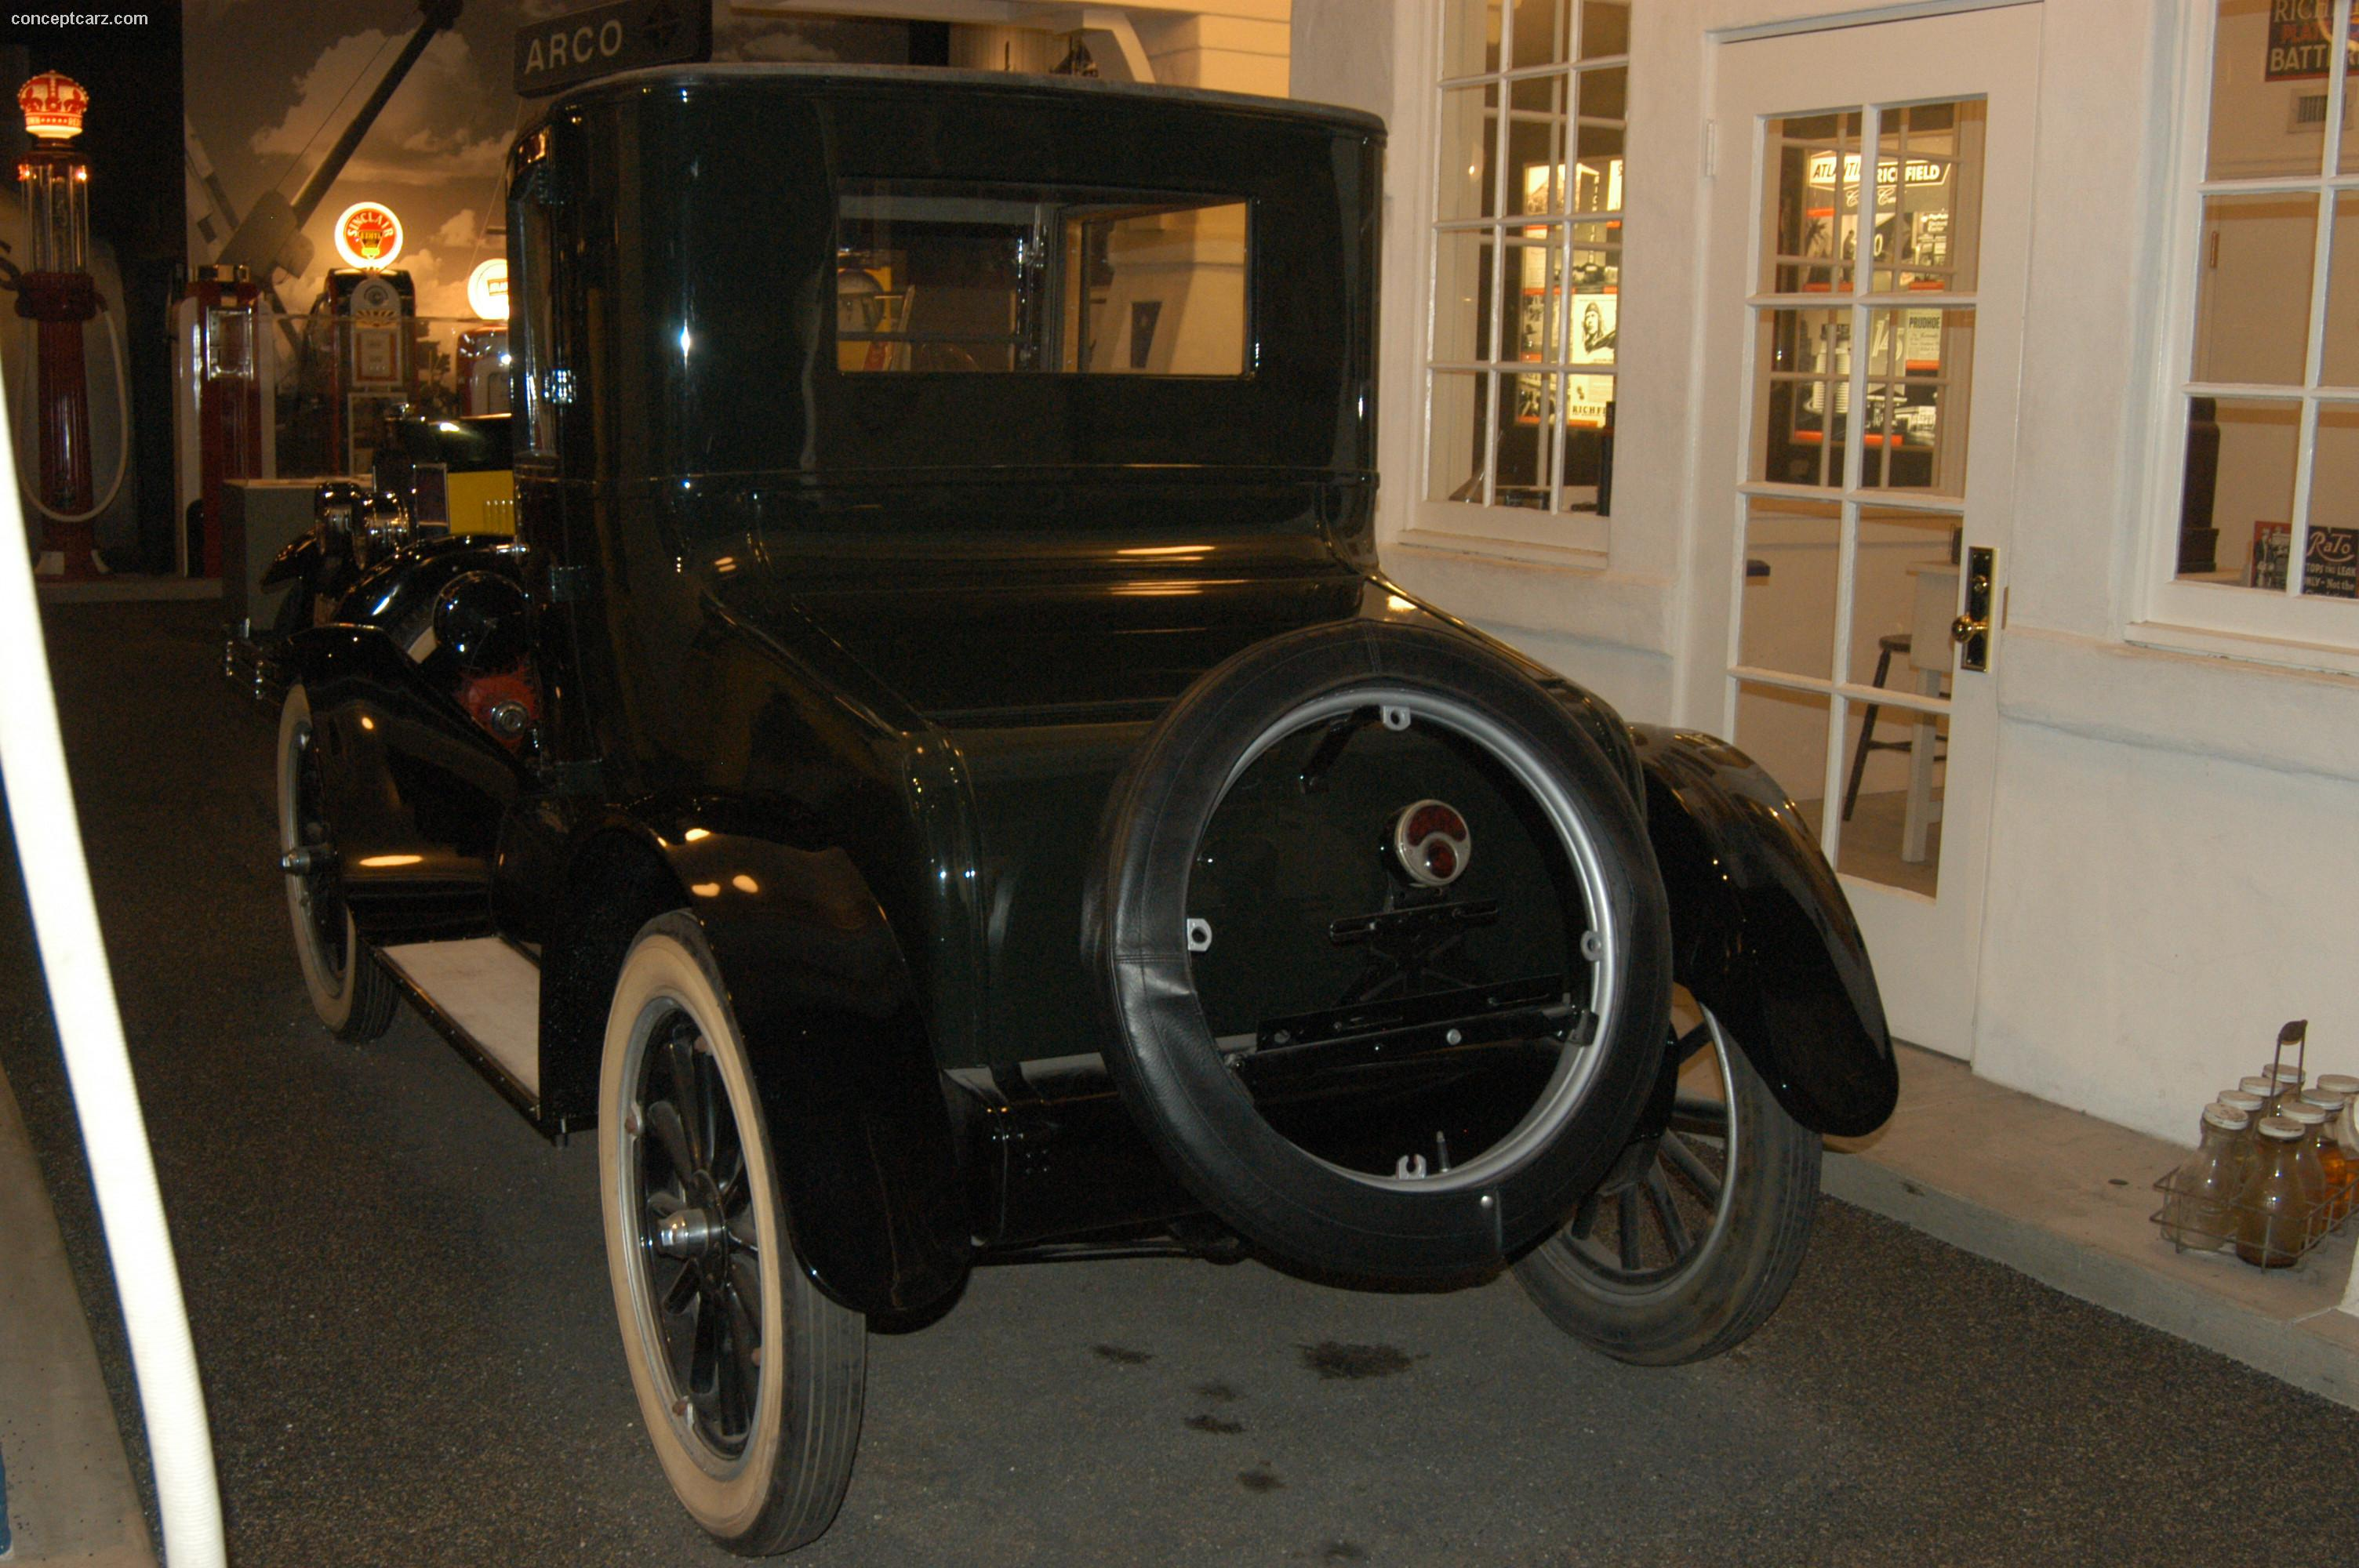 1922 chevrolet series 490 pictures history value research news conceptcarz com